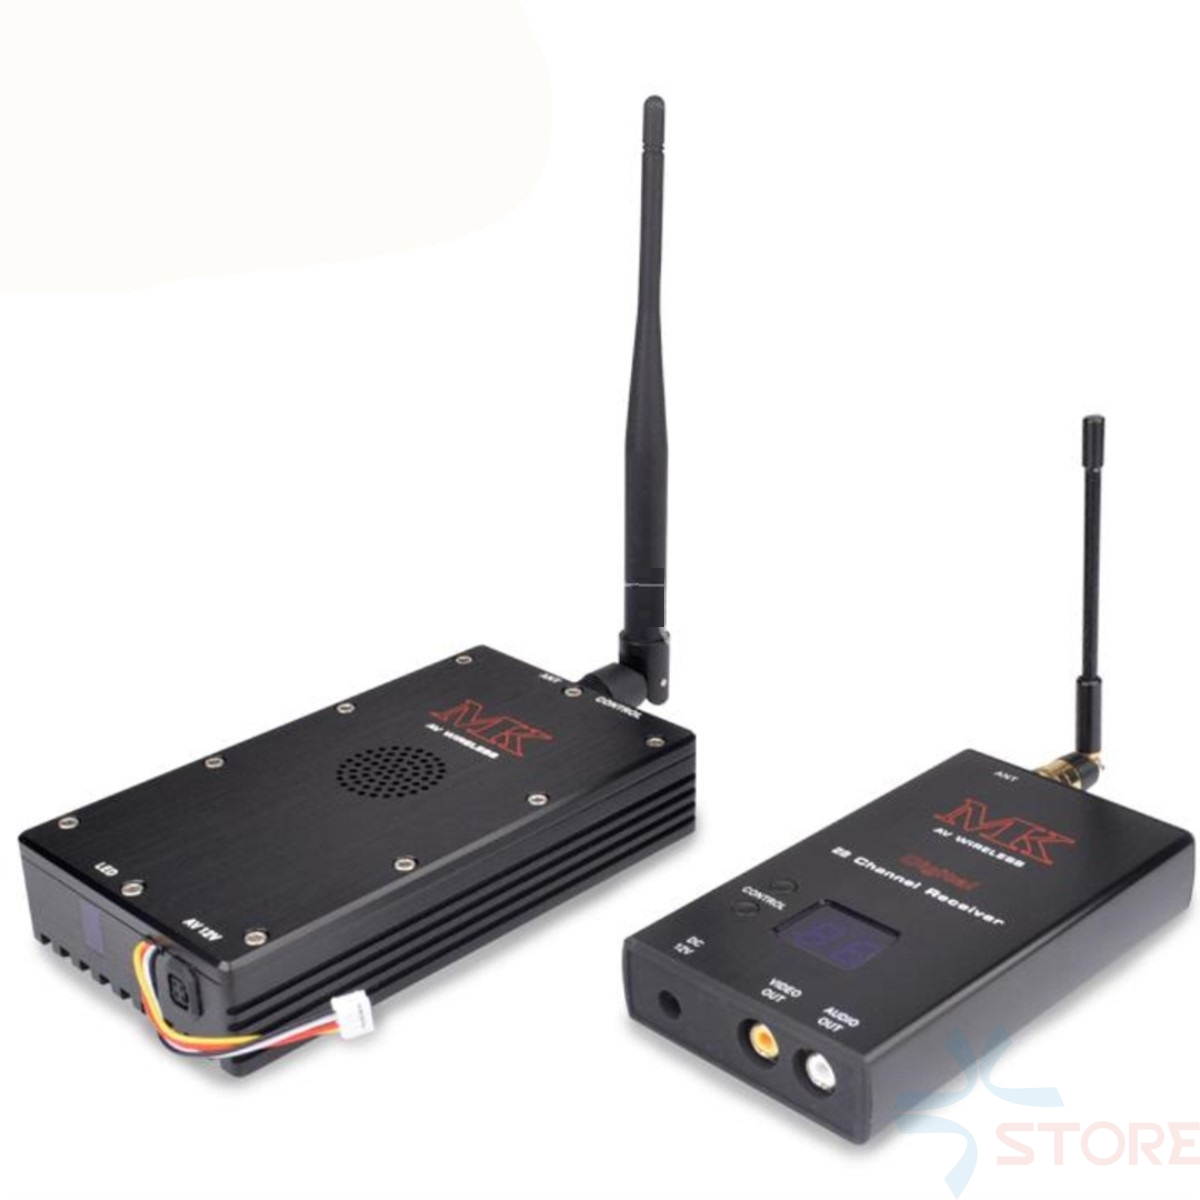 MK brand 10W 15ch 0.9G-1.2G cctv transceiver high-power wireless video transmitter and receiver monitoring transmission equipmen taiwan 1 3ghz 7000mw 7w wireless transceiver 1 3ghz video audio transmitter receiver long range fpv cctv transmitter